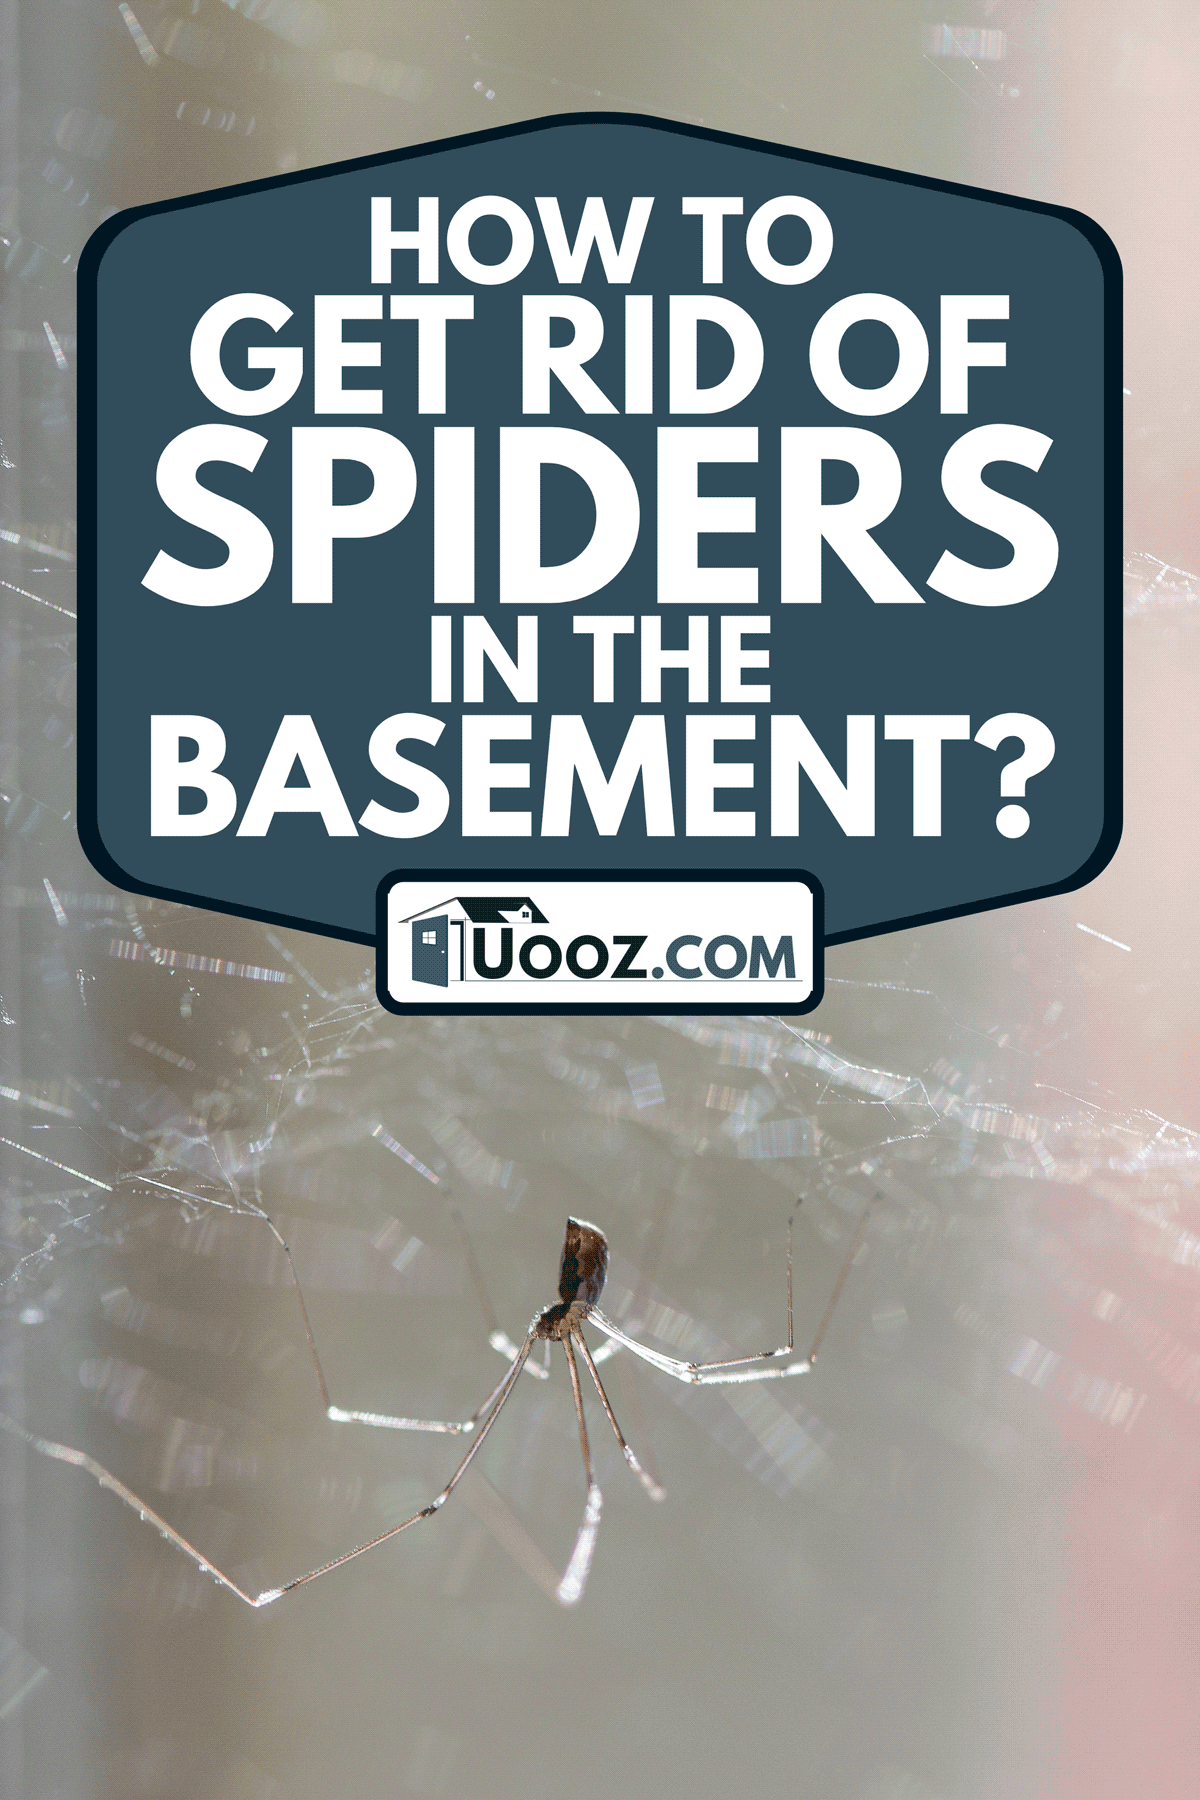 Daddy longlegs home spider with eight thin legs hanging from its cobweb in the corner, How To Get Rid Of Spiders In The Basement?